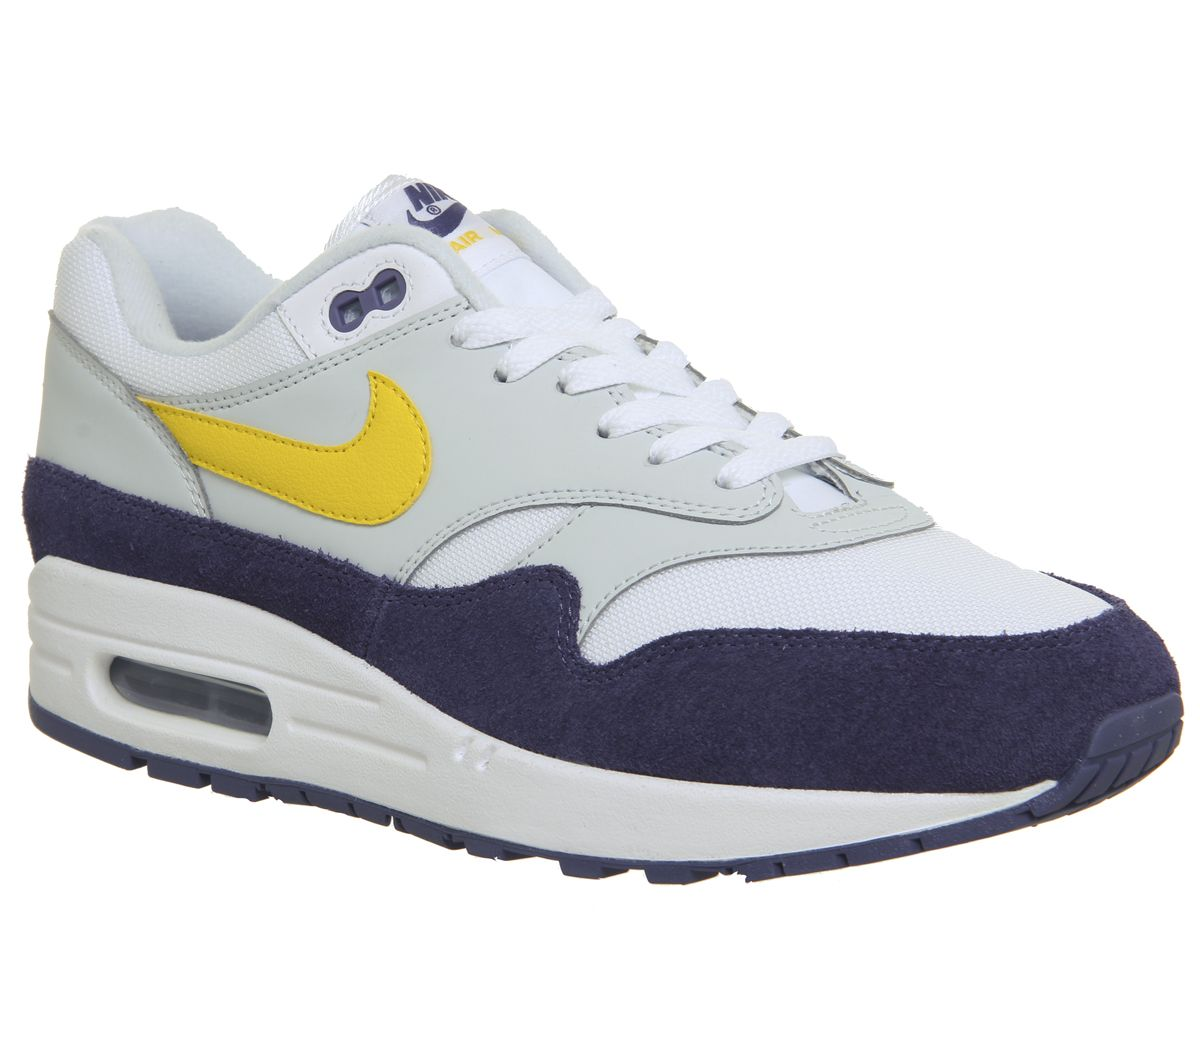 08a2c19f8c012 Nike Air Max 1 Trainers White Tour Yellow Blue Special - His trainers